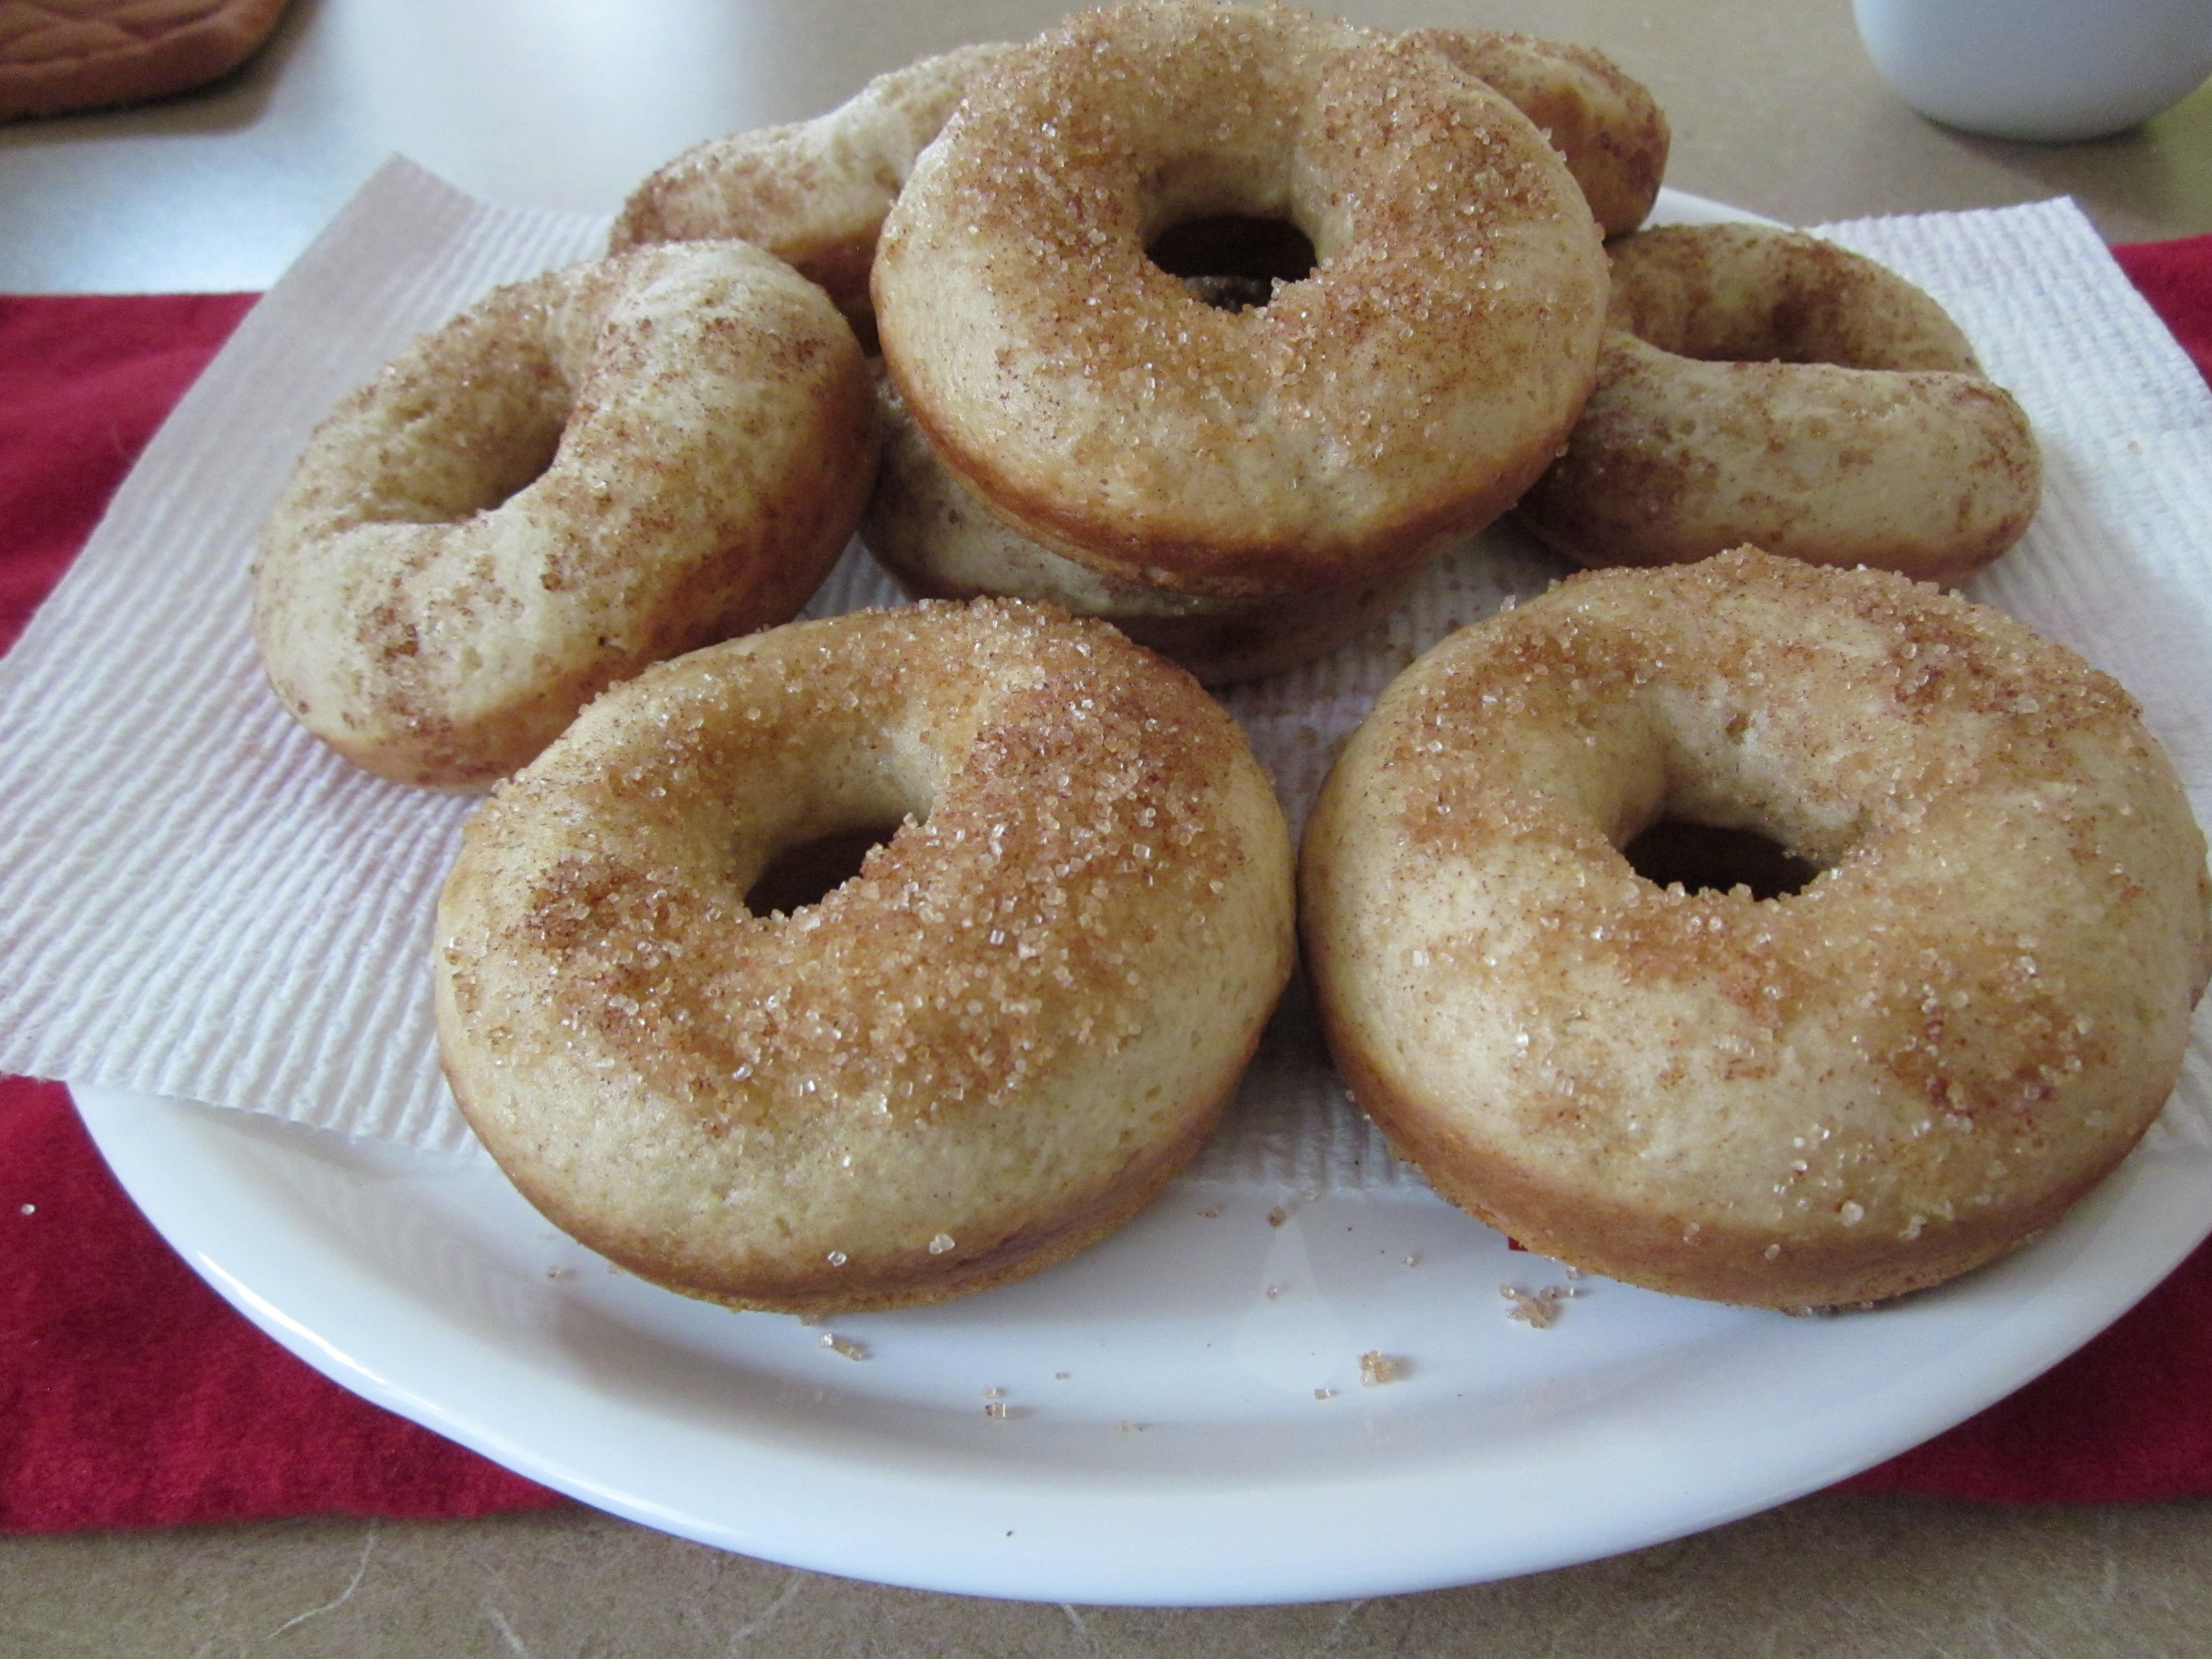 Cake doughnuts recipe demonstration